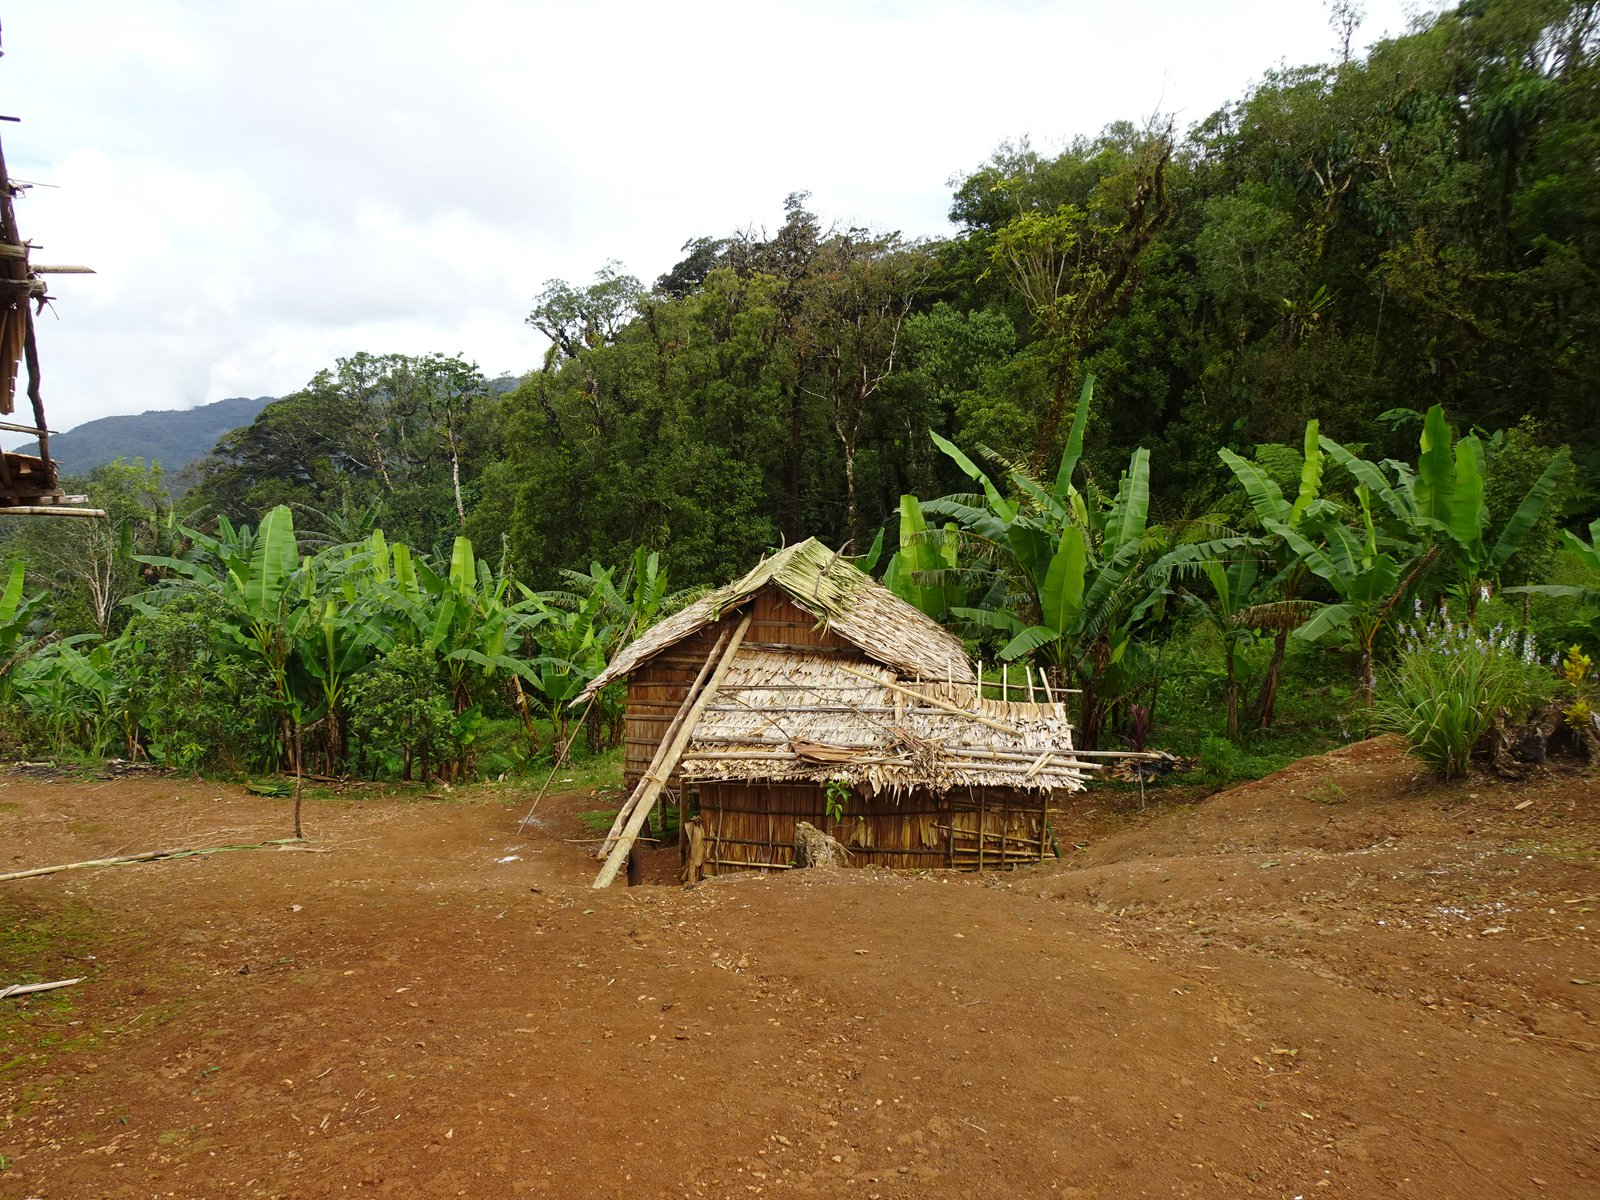 Traditional dwelling in Malaita, Solomon Islands